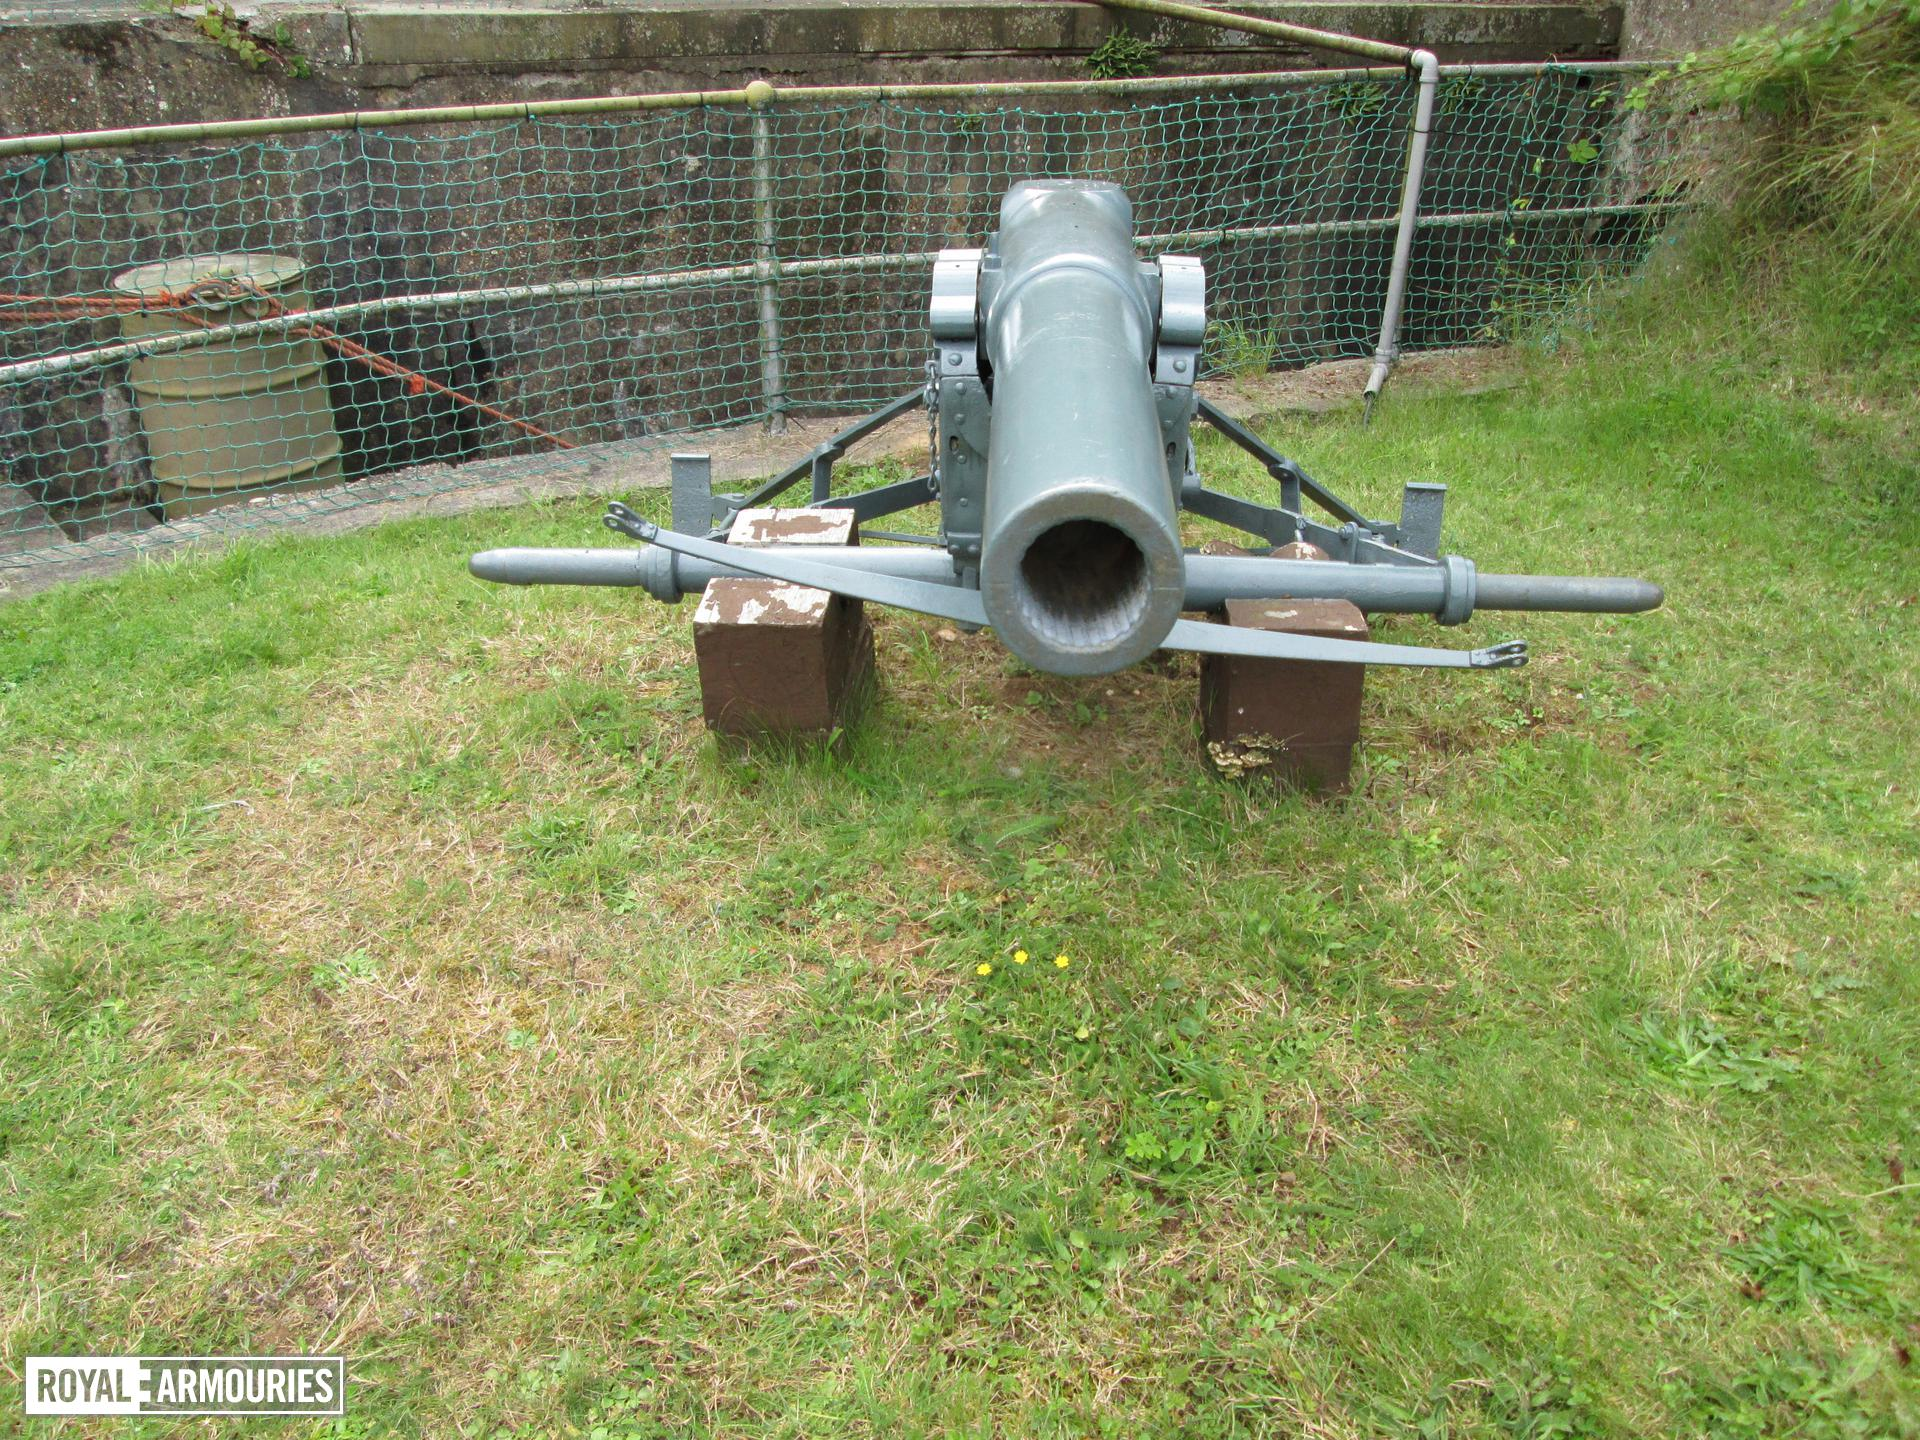 Gun on display at Fort Paull.